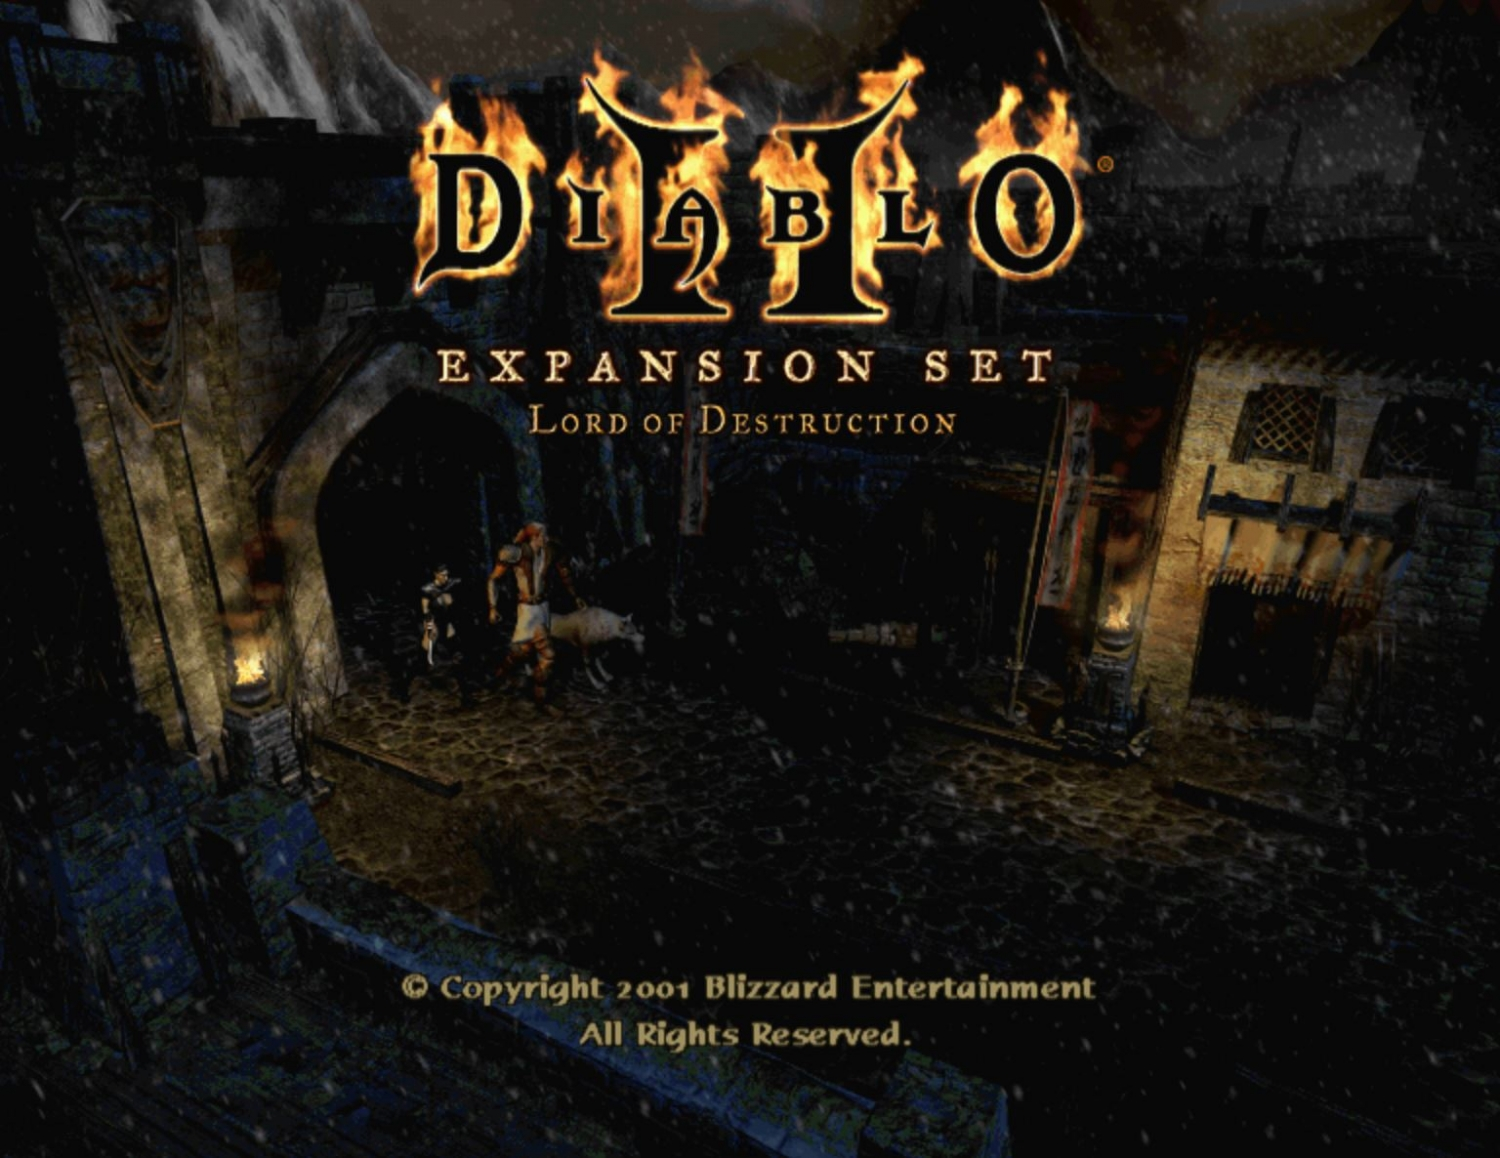 Blizz North designed an expansion beyond Diablo II Lord of Destruction